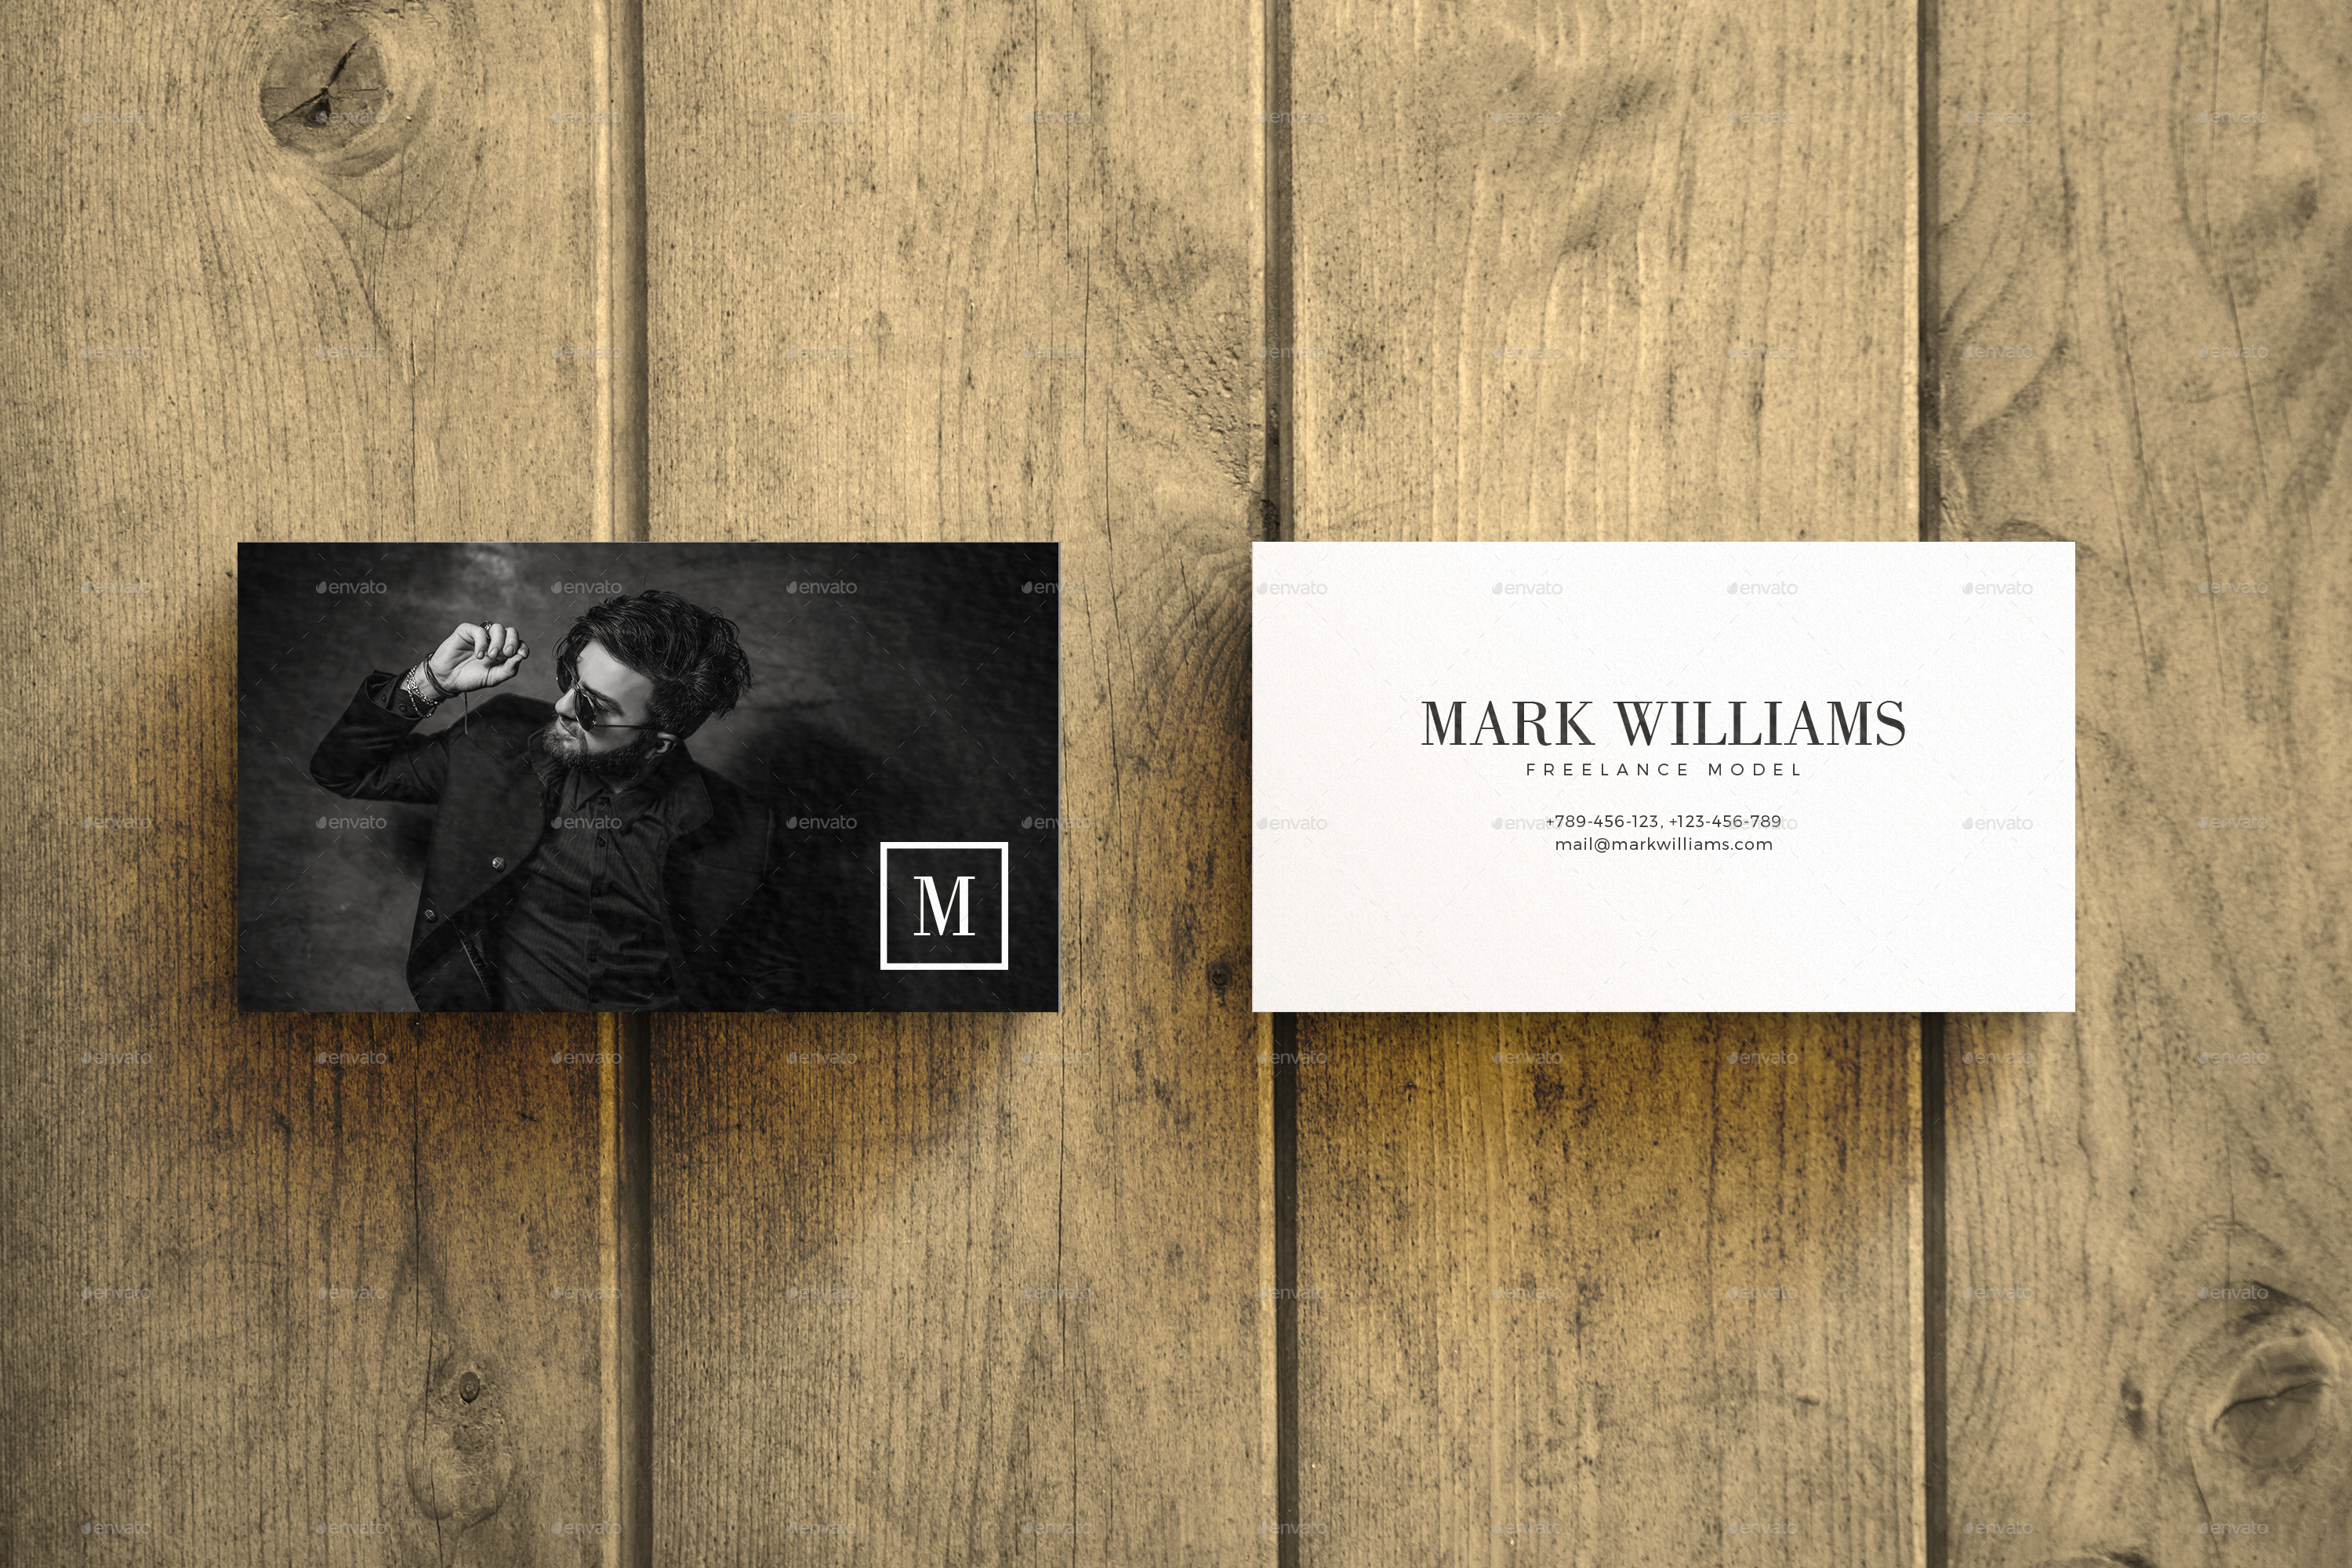 2 business card mockups by swapnil24 graphicriver square business card mockupg square business card mockup1g standard business card mockupg reheart Choice Image